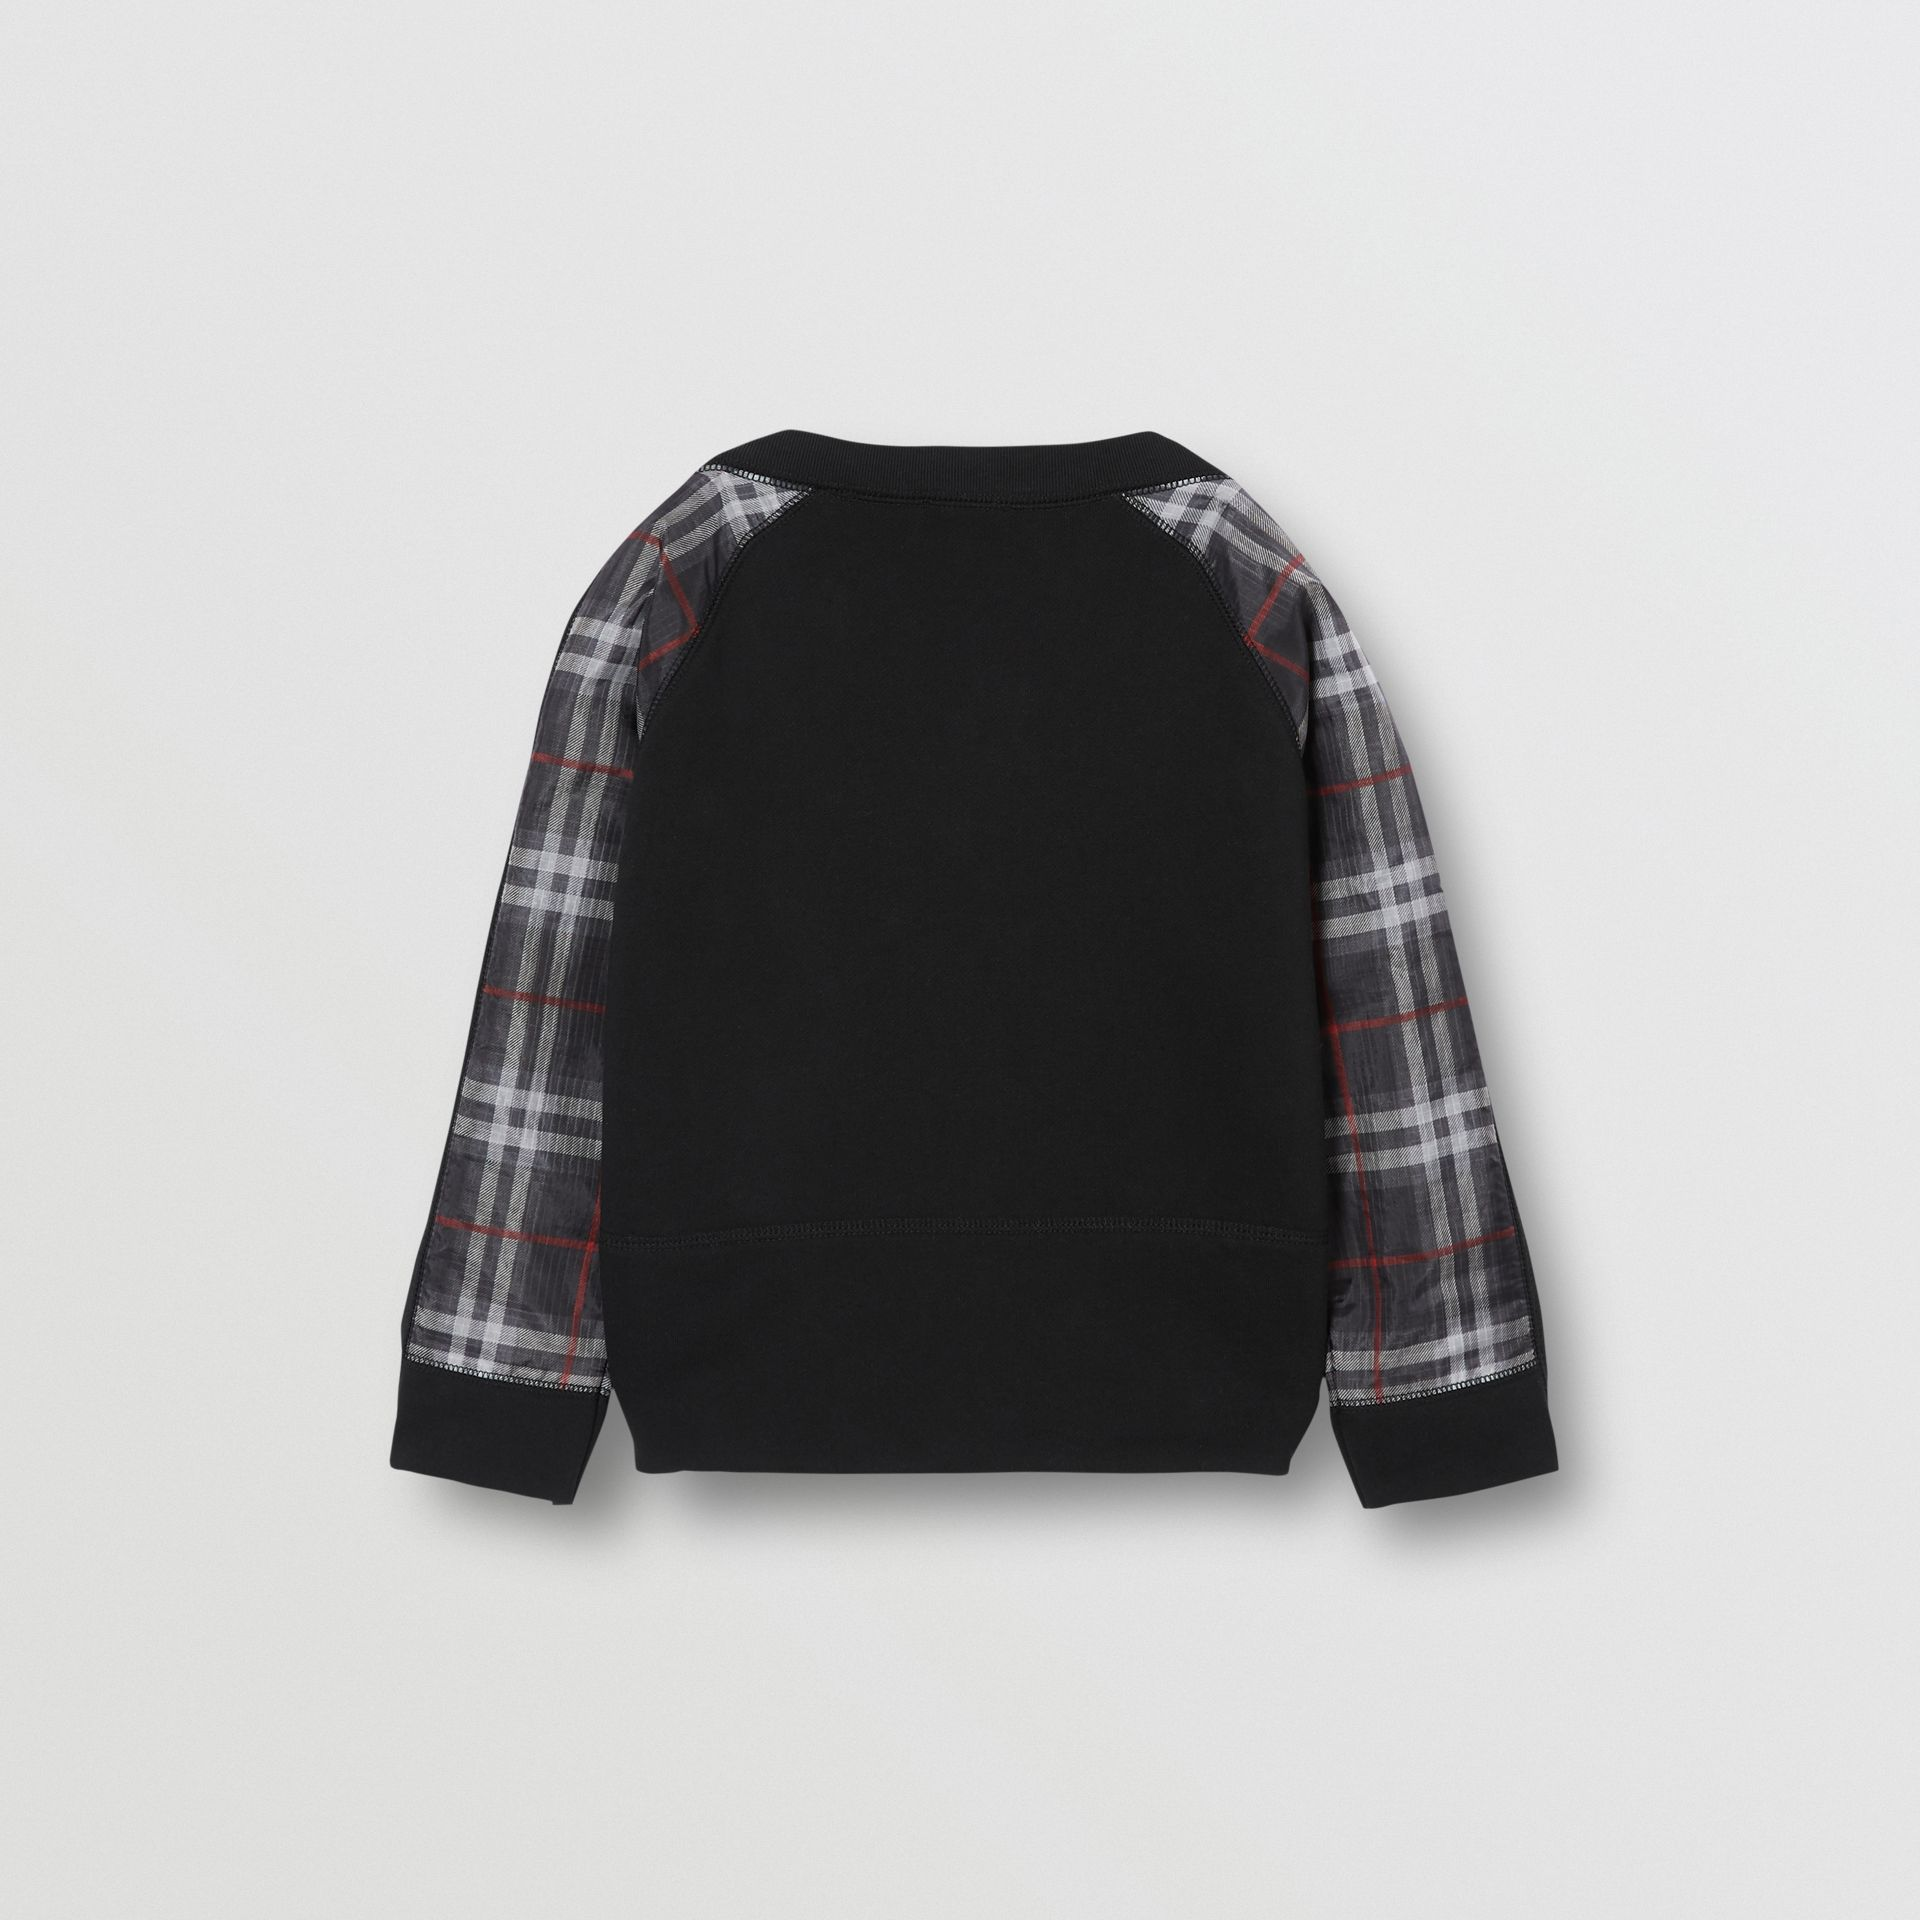 Sweat-shirt en coton avec logo et Vintage check (Noir) | Burberry - photo de la galerie 3